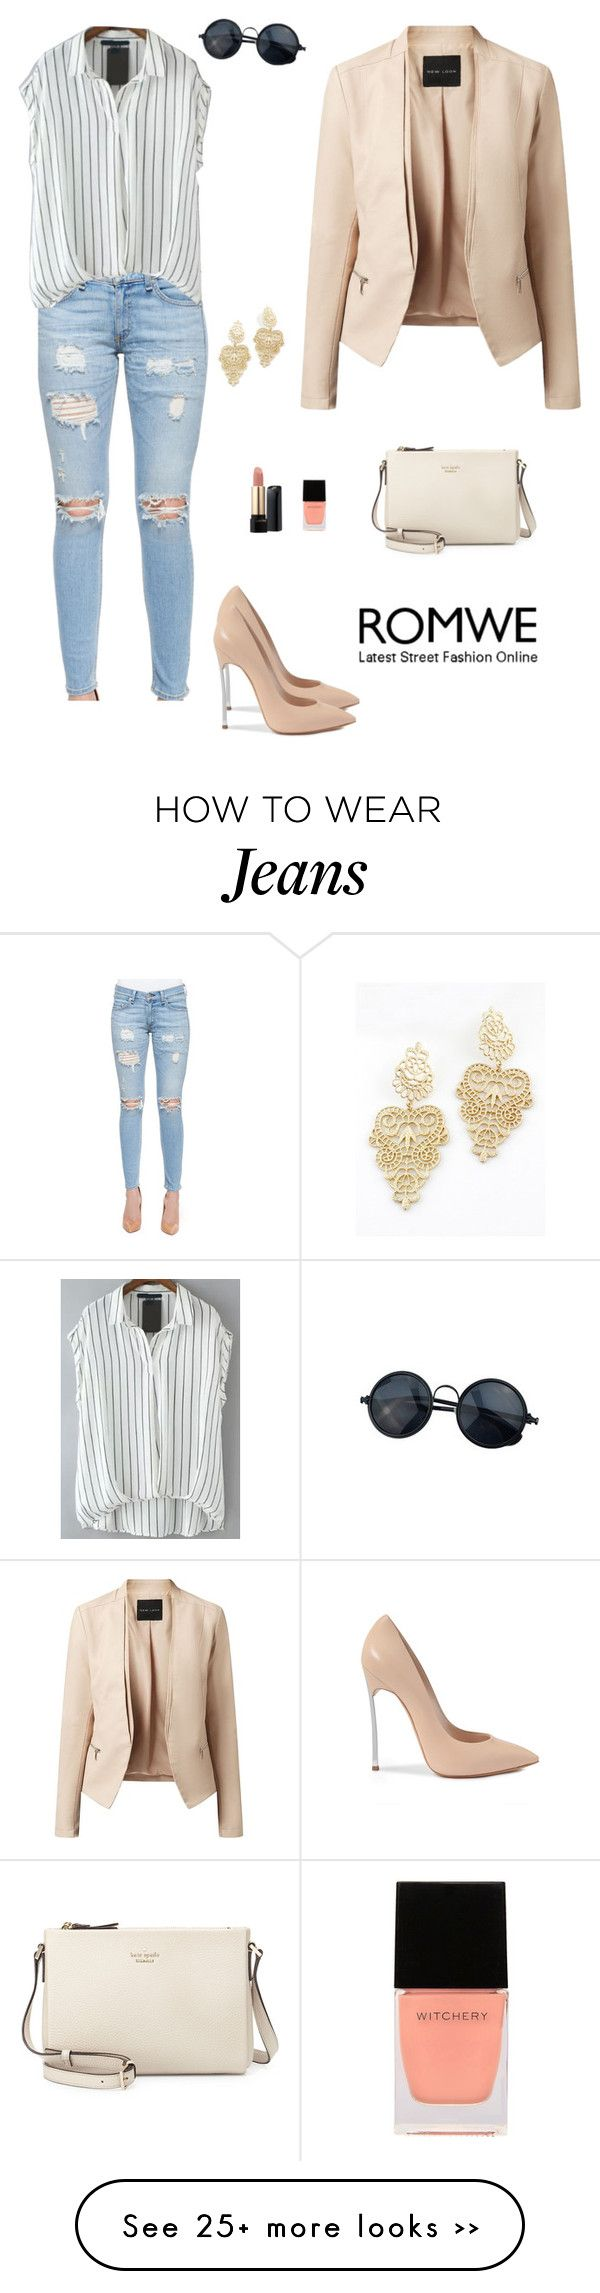 """Romwe 4"" by amra-f on Polyvore"